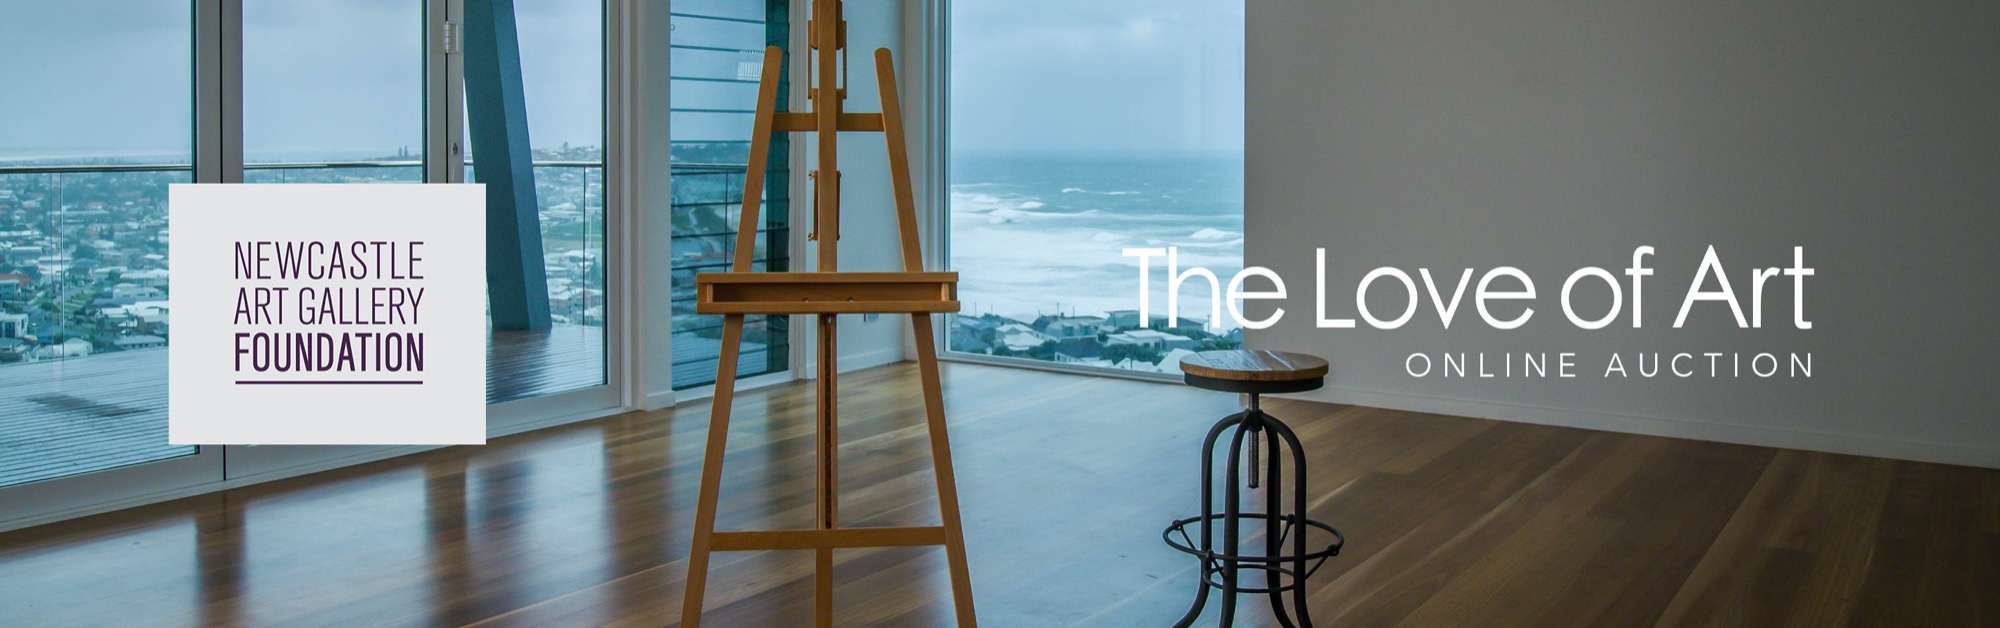 Newcastle Art Gallery Foundation The Love of Art Online Auction